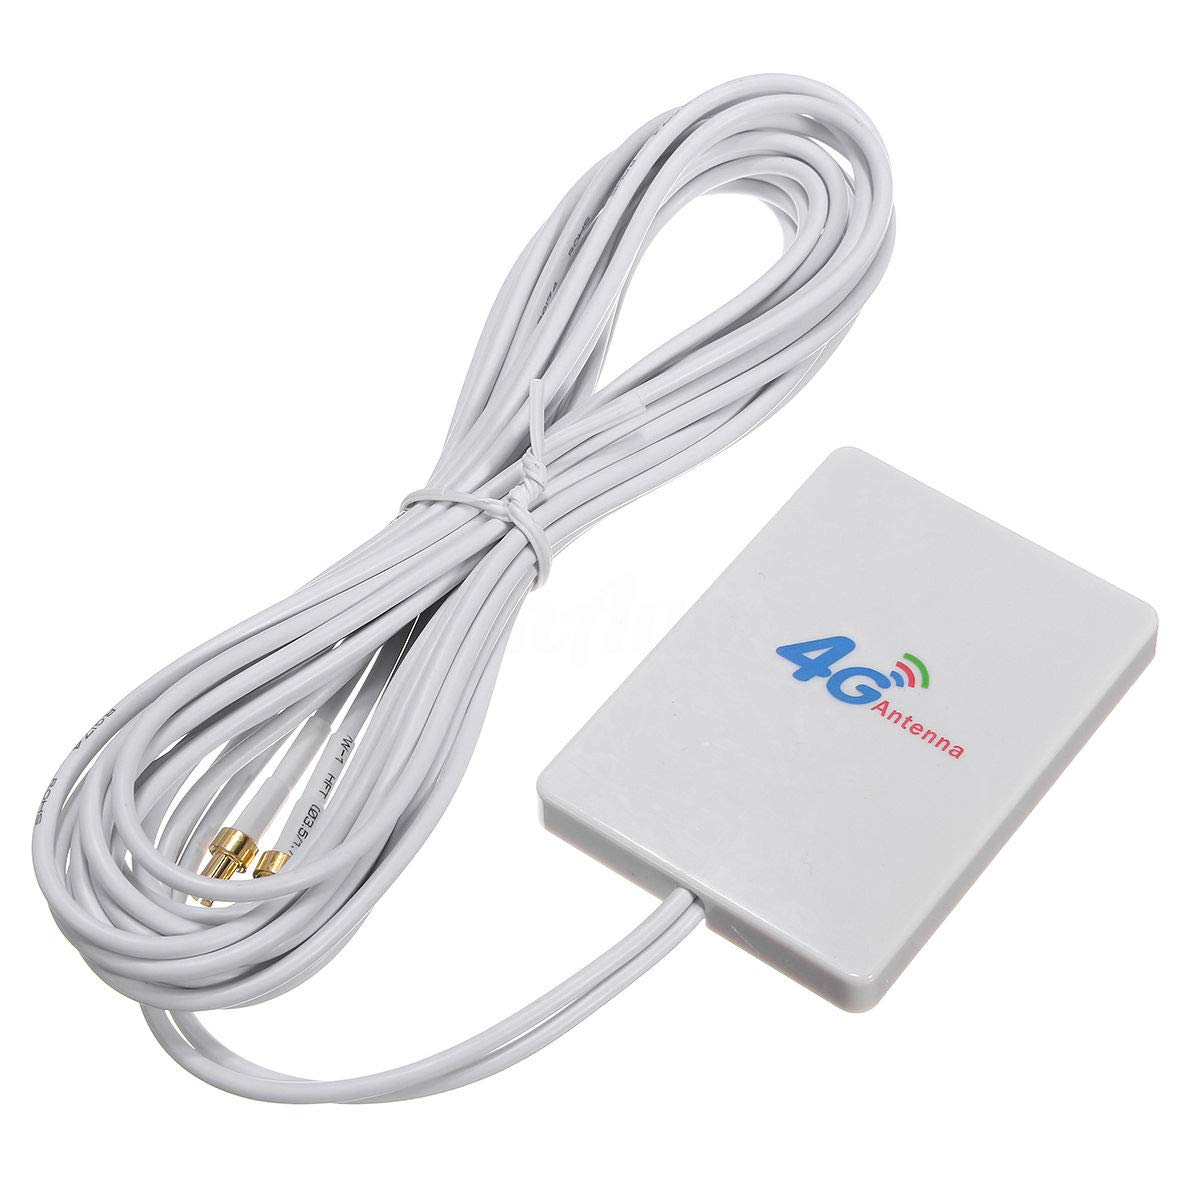 LTE 28dBi 4G 3G LTE 2 x TS9 Broadband Antenna Signal Amplifier For Mobile Router